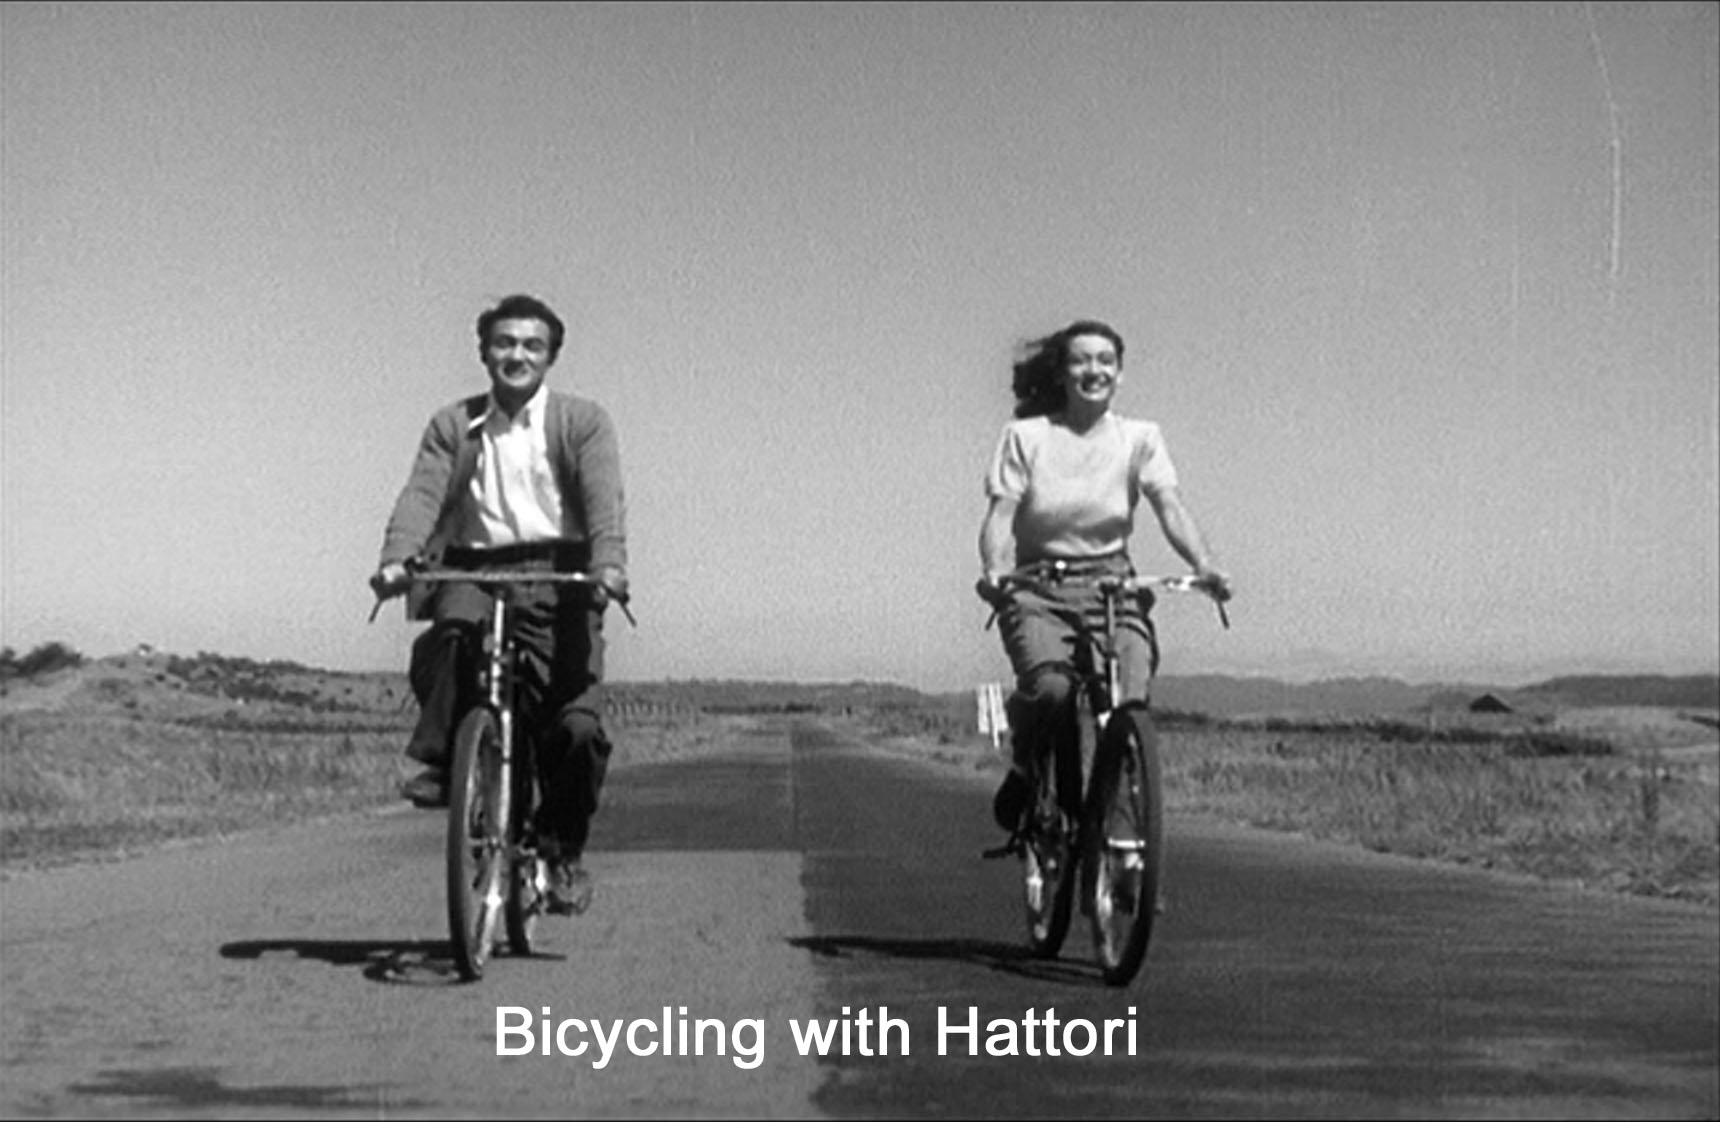 Bicycling with Hattori